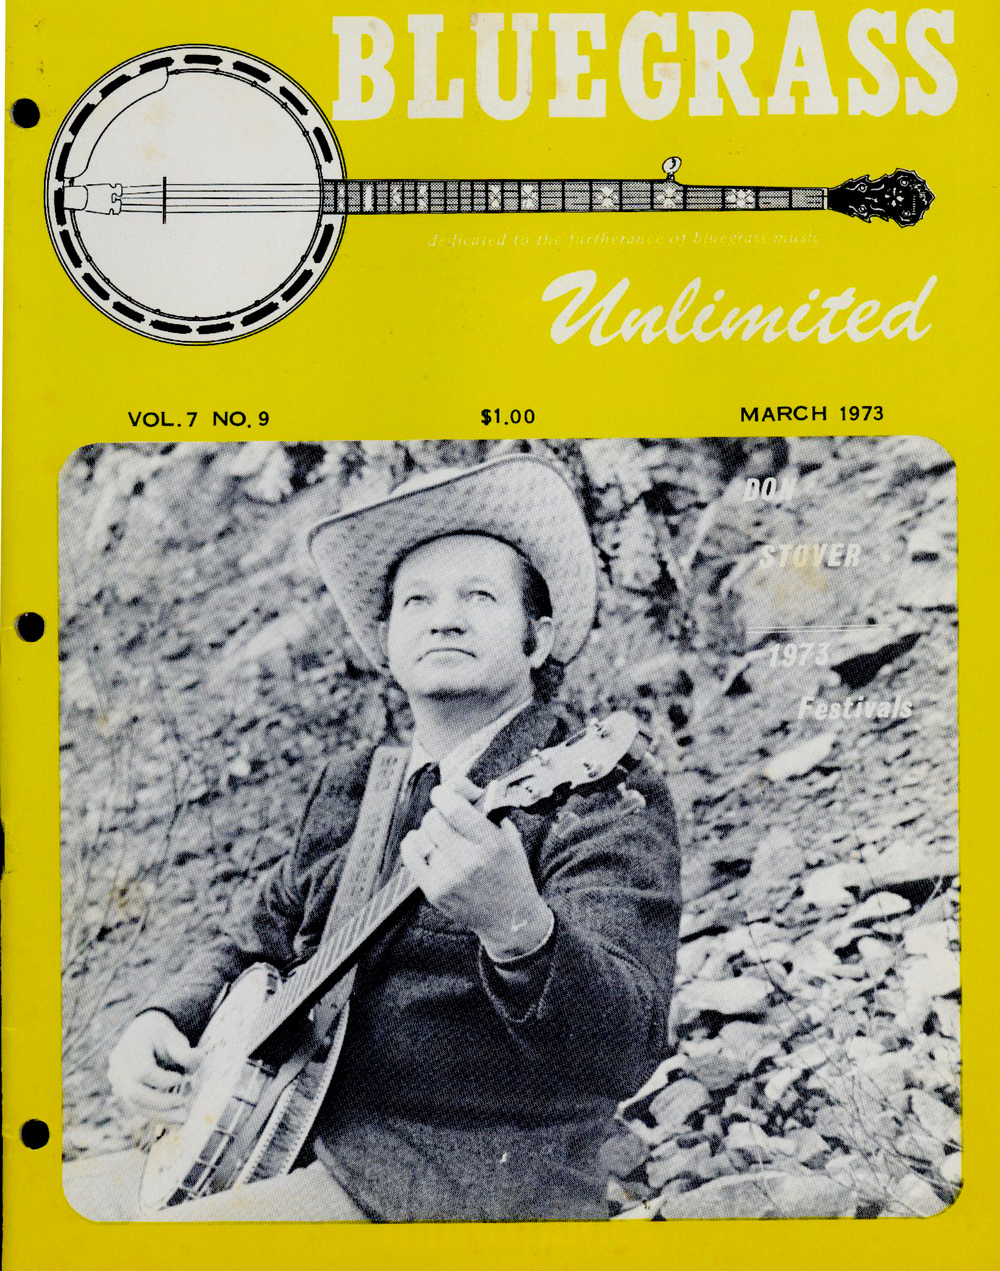 "From the Archives:  Contents: editorials; ""1973 Summer Festival Schedule""; ""Big Banjo from Boston: The Don Stover Story"" by Jack Tottle, includes a black and white photograph; ""Bluegrass Unlimited Merit Award: Fay McGinnis"" by Pat Mahoney, includes a black and white photograph; record reviews and advertisements; ""The Country Gentlemen and The U.S. Navy Band"" by Barbara Taylor; ""General Store""; ""Forgotten But Not Gone: Connie and Babe and the Backwoods Boys"" by Douglas Green, includes several black and white photographs; ""Strings 'n Things: Bluegrass Instruments:  Original vs. Reproduction: Gibson F-5 Mandolins"" by George Gruhn (with Douglas Green); schedules of events and personal appearances; classified ads.   From the museum's Bluegrass Unlimited collection."